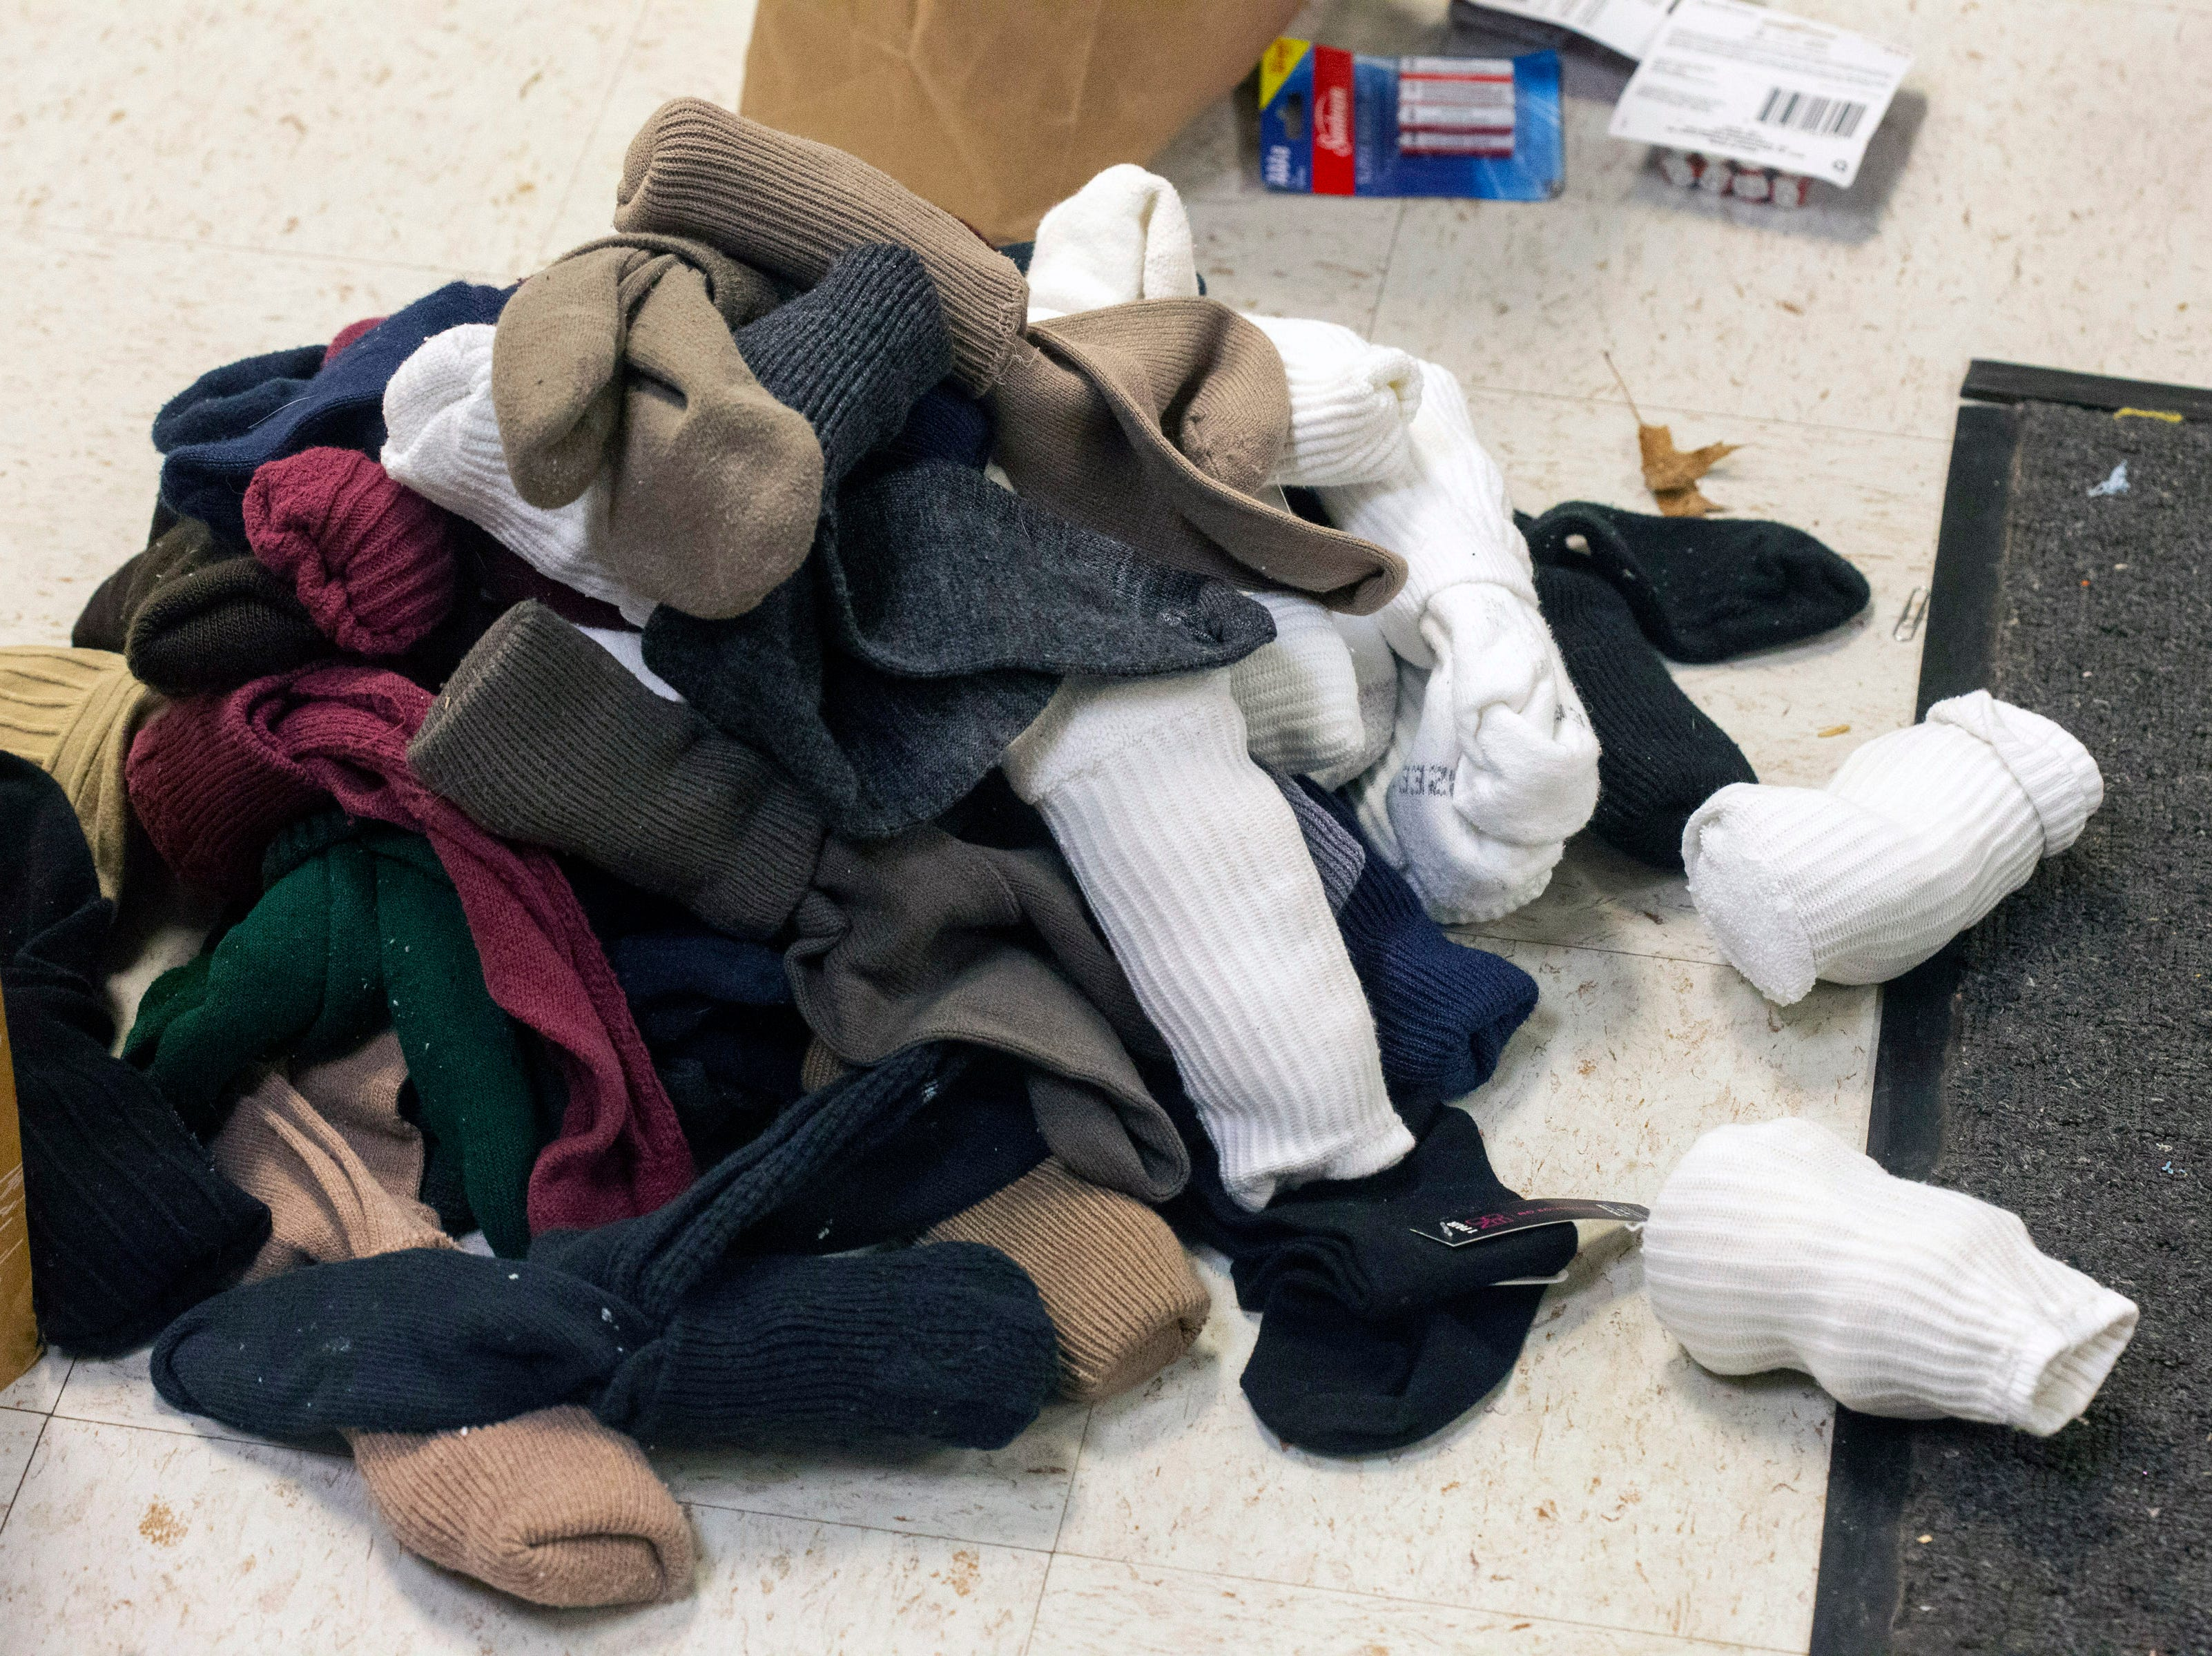 Socks are sorted into a pile for distribution to the homeless. 11/26/18